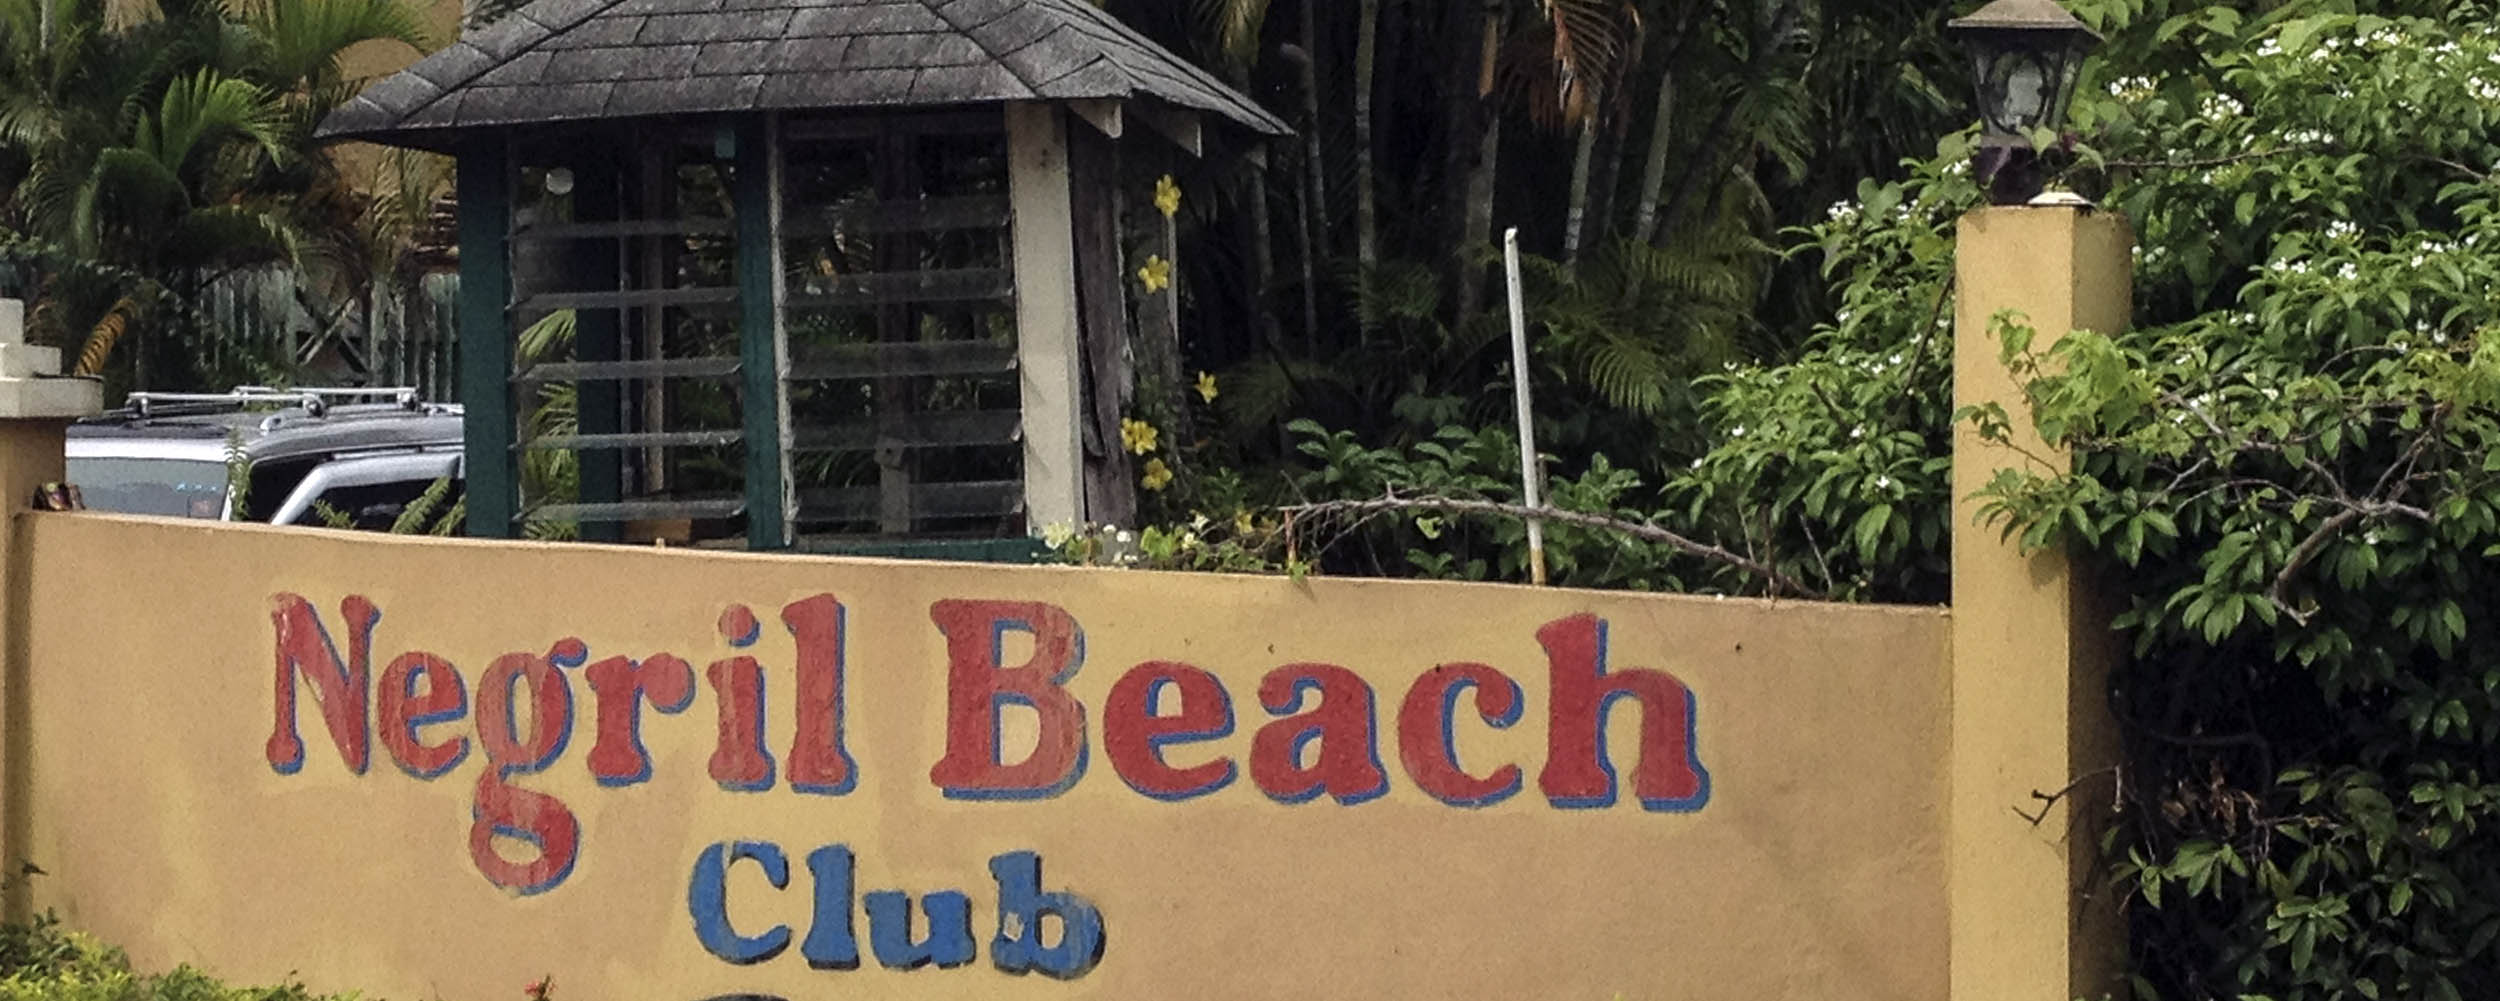 Negril Beach Club - Negril Jamaica